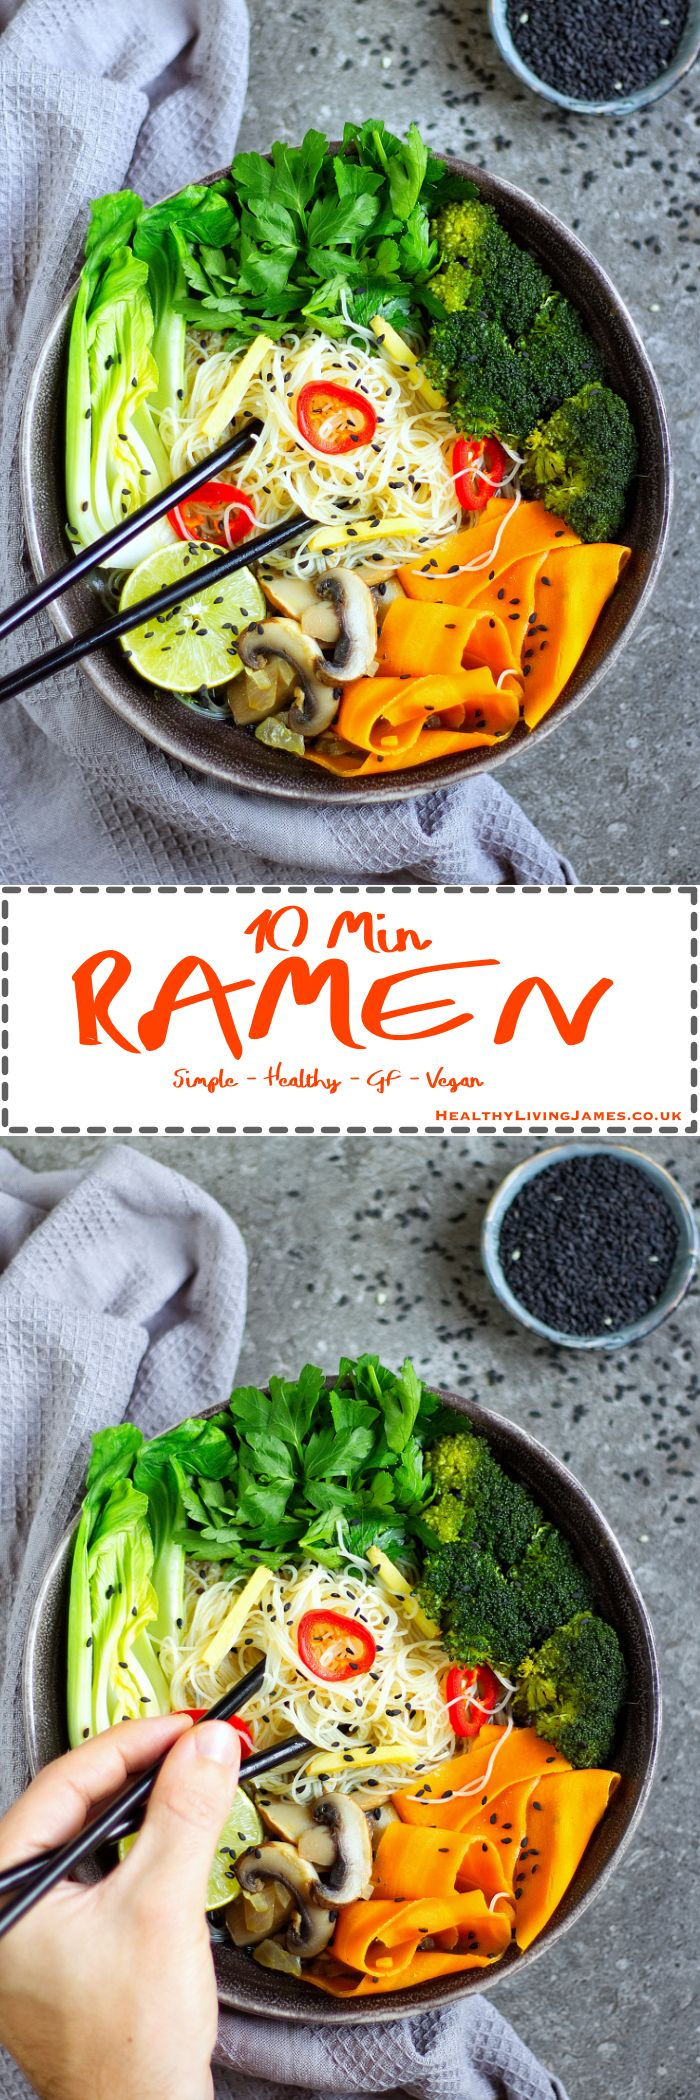 An extremely simple and healthy gluten free, vegan, dairy free, egg free ramen that you can make within 10 minutes! It is absolutely packed full of colour and flavour and perfect for a quick and tasty lunch or dinner!